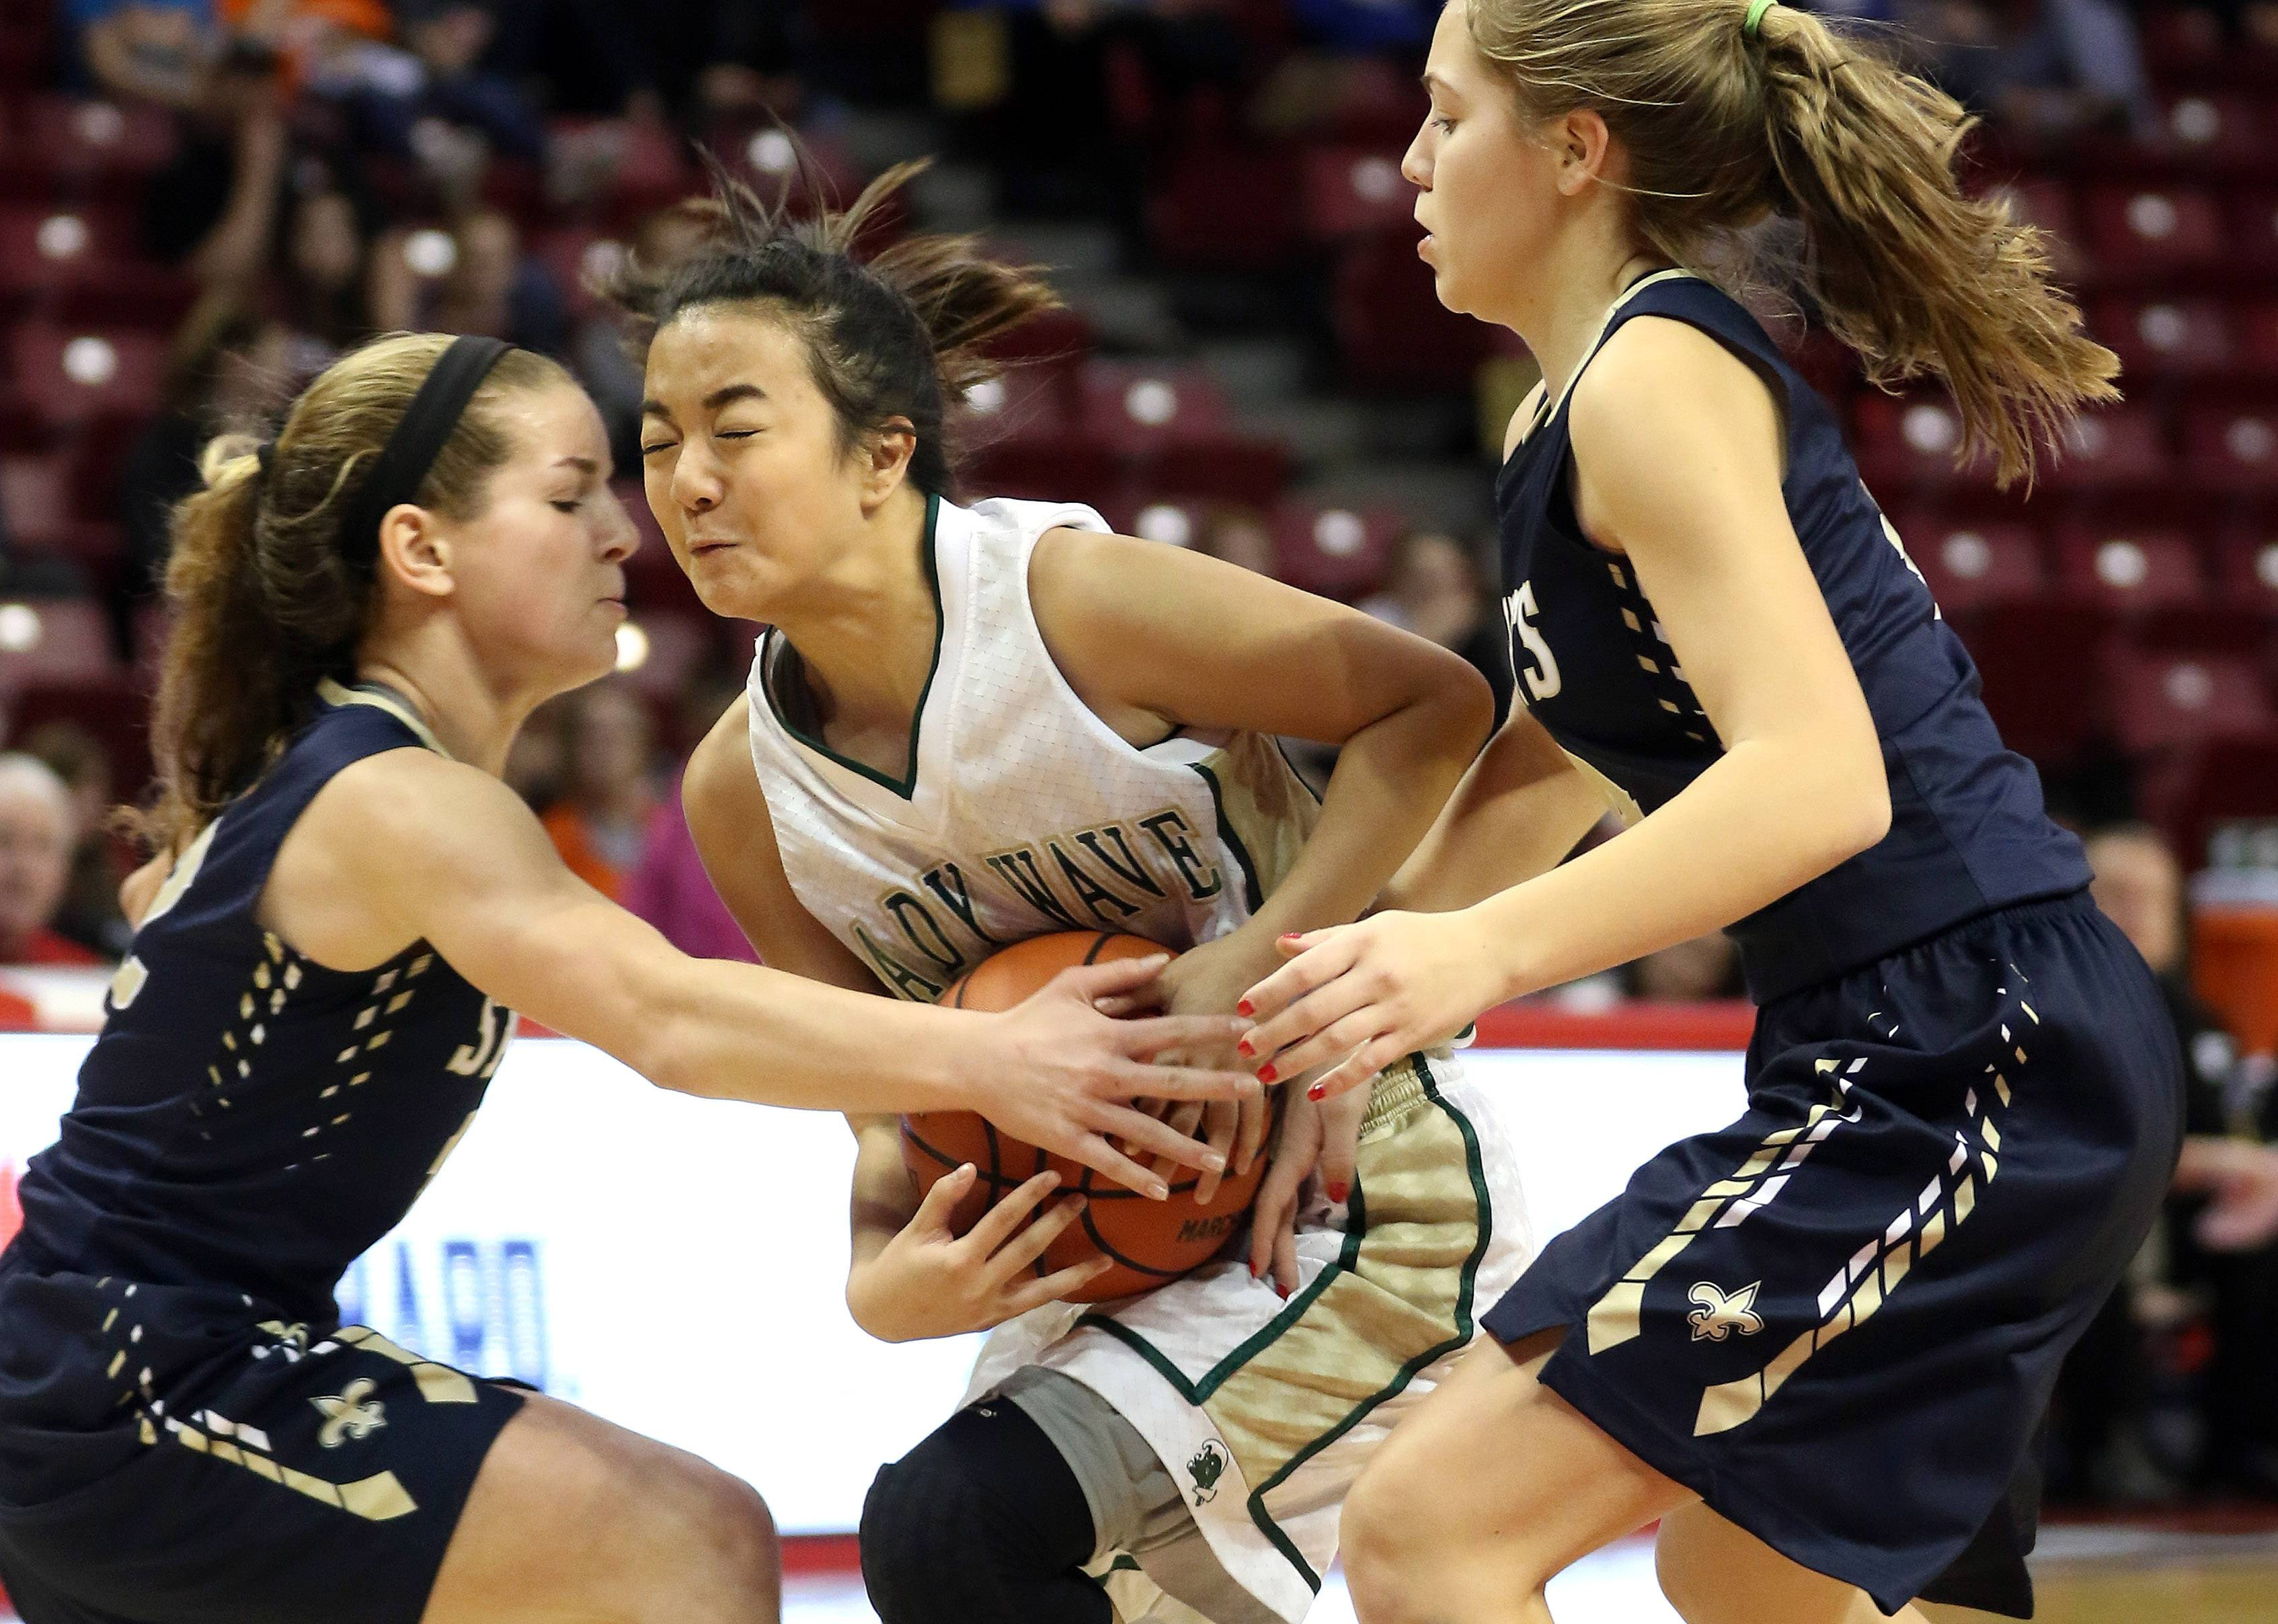 St. Edward's Yssa Sto. Domingo, middle, drives through Central Catholic's Lauren Shanks and Charlie Sartoris.